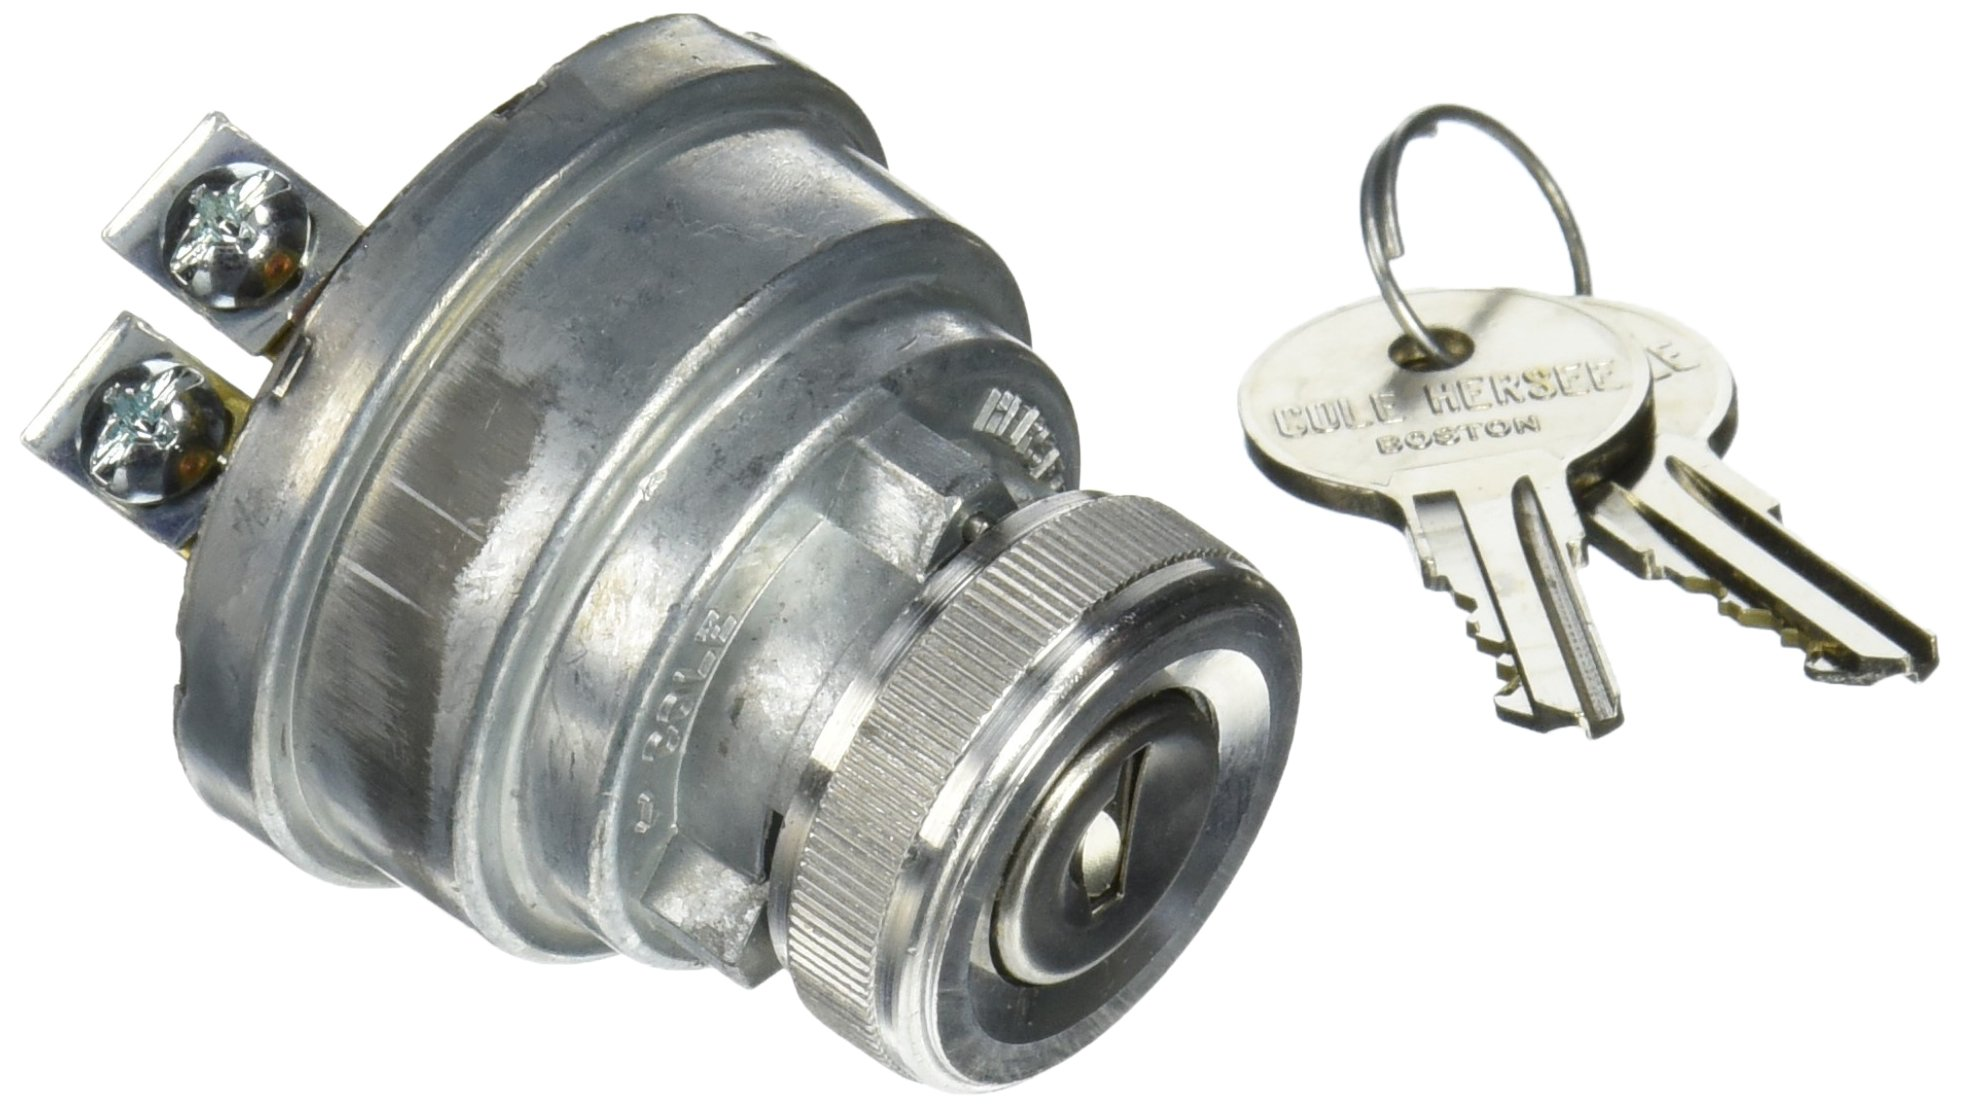 Cole Hersee 956-3125-BX Ignition Switch (3 Position) by Cole Hersee